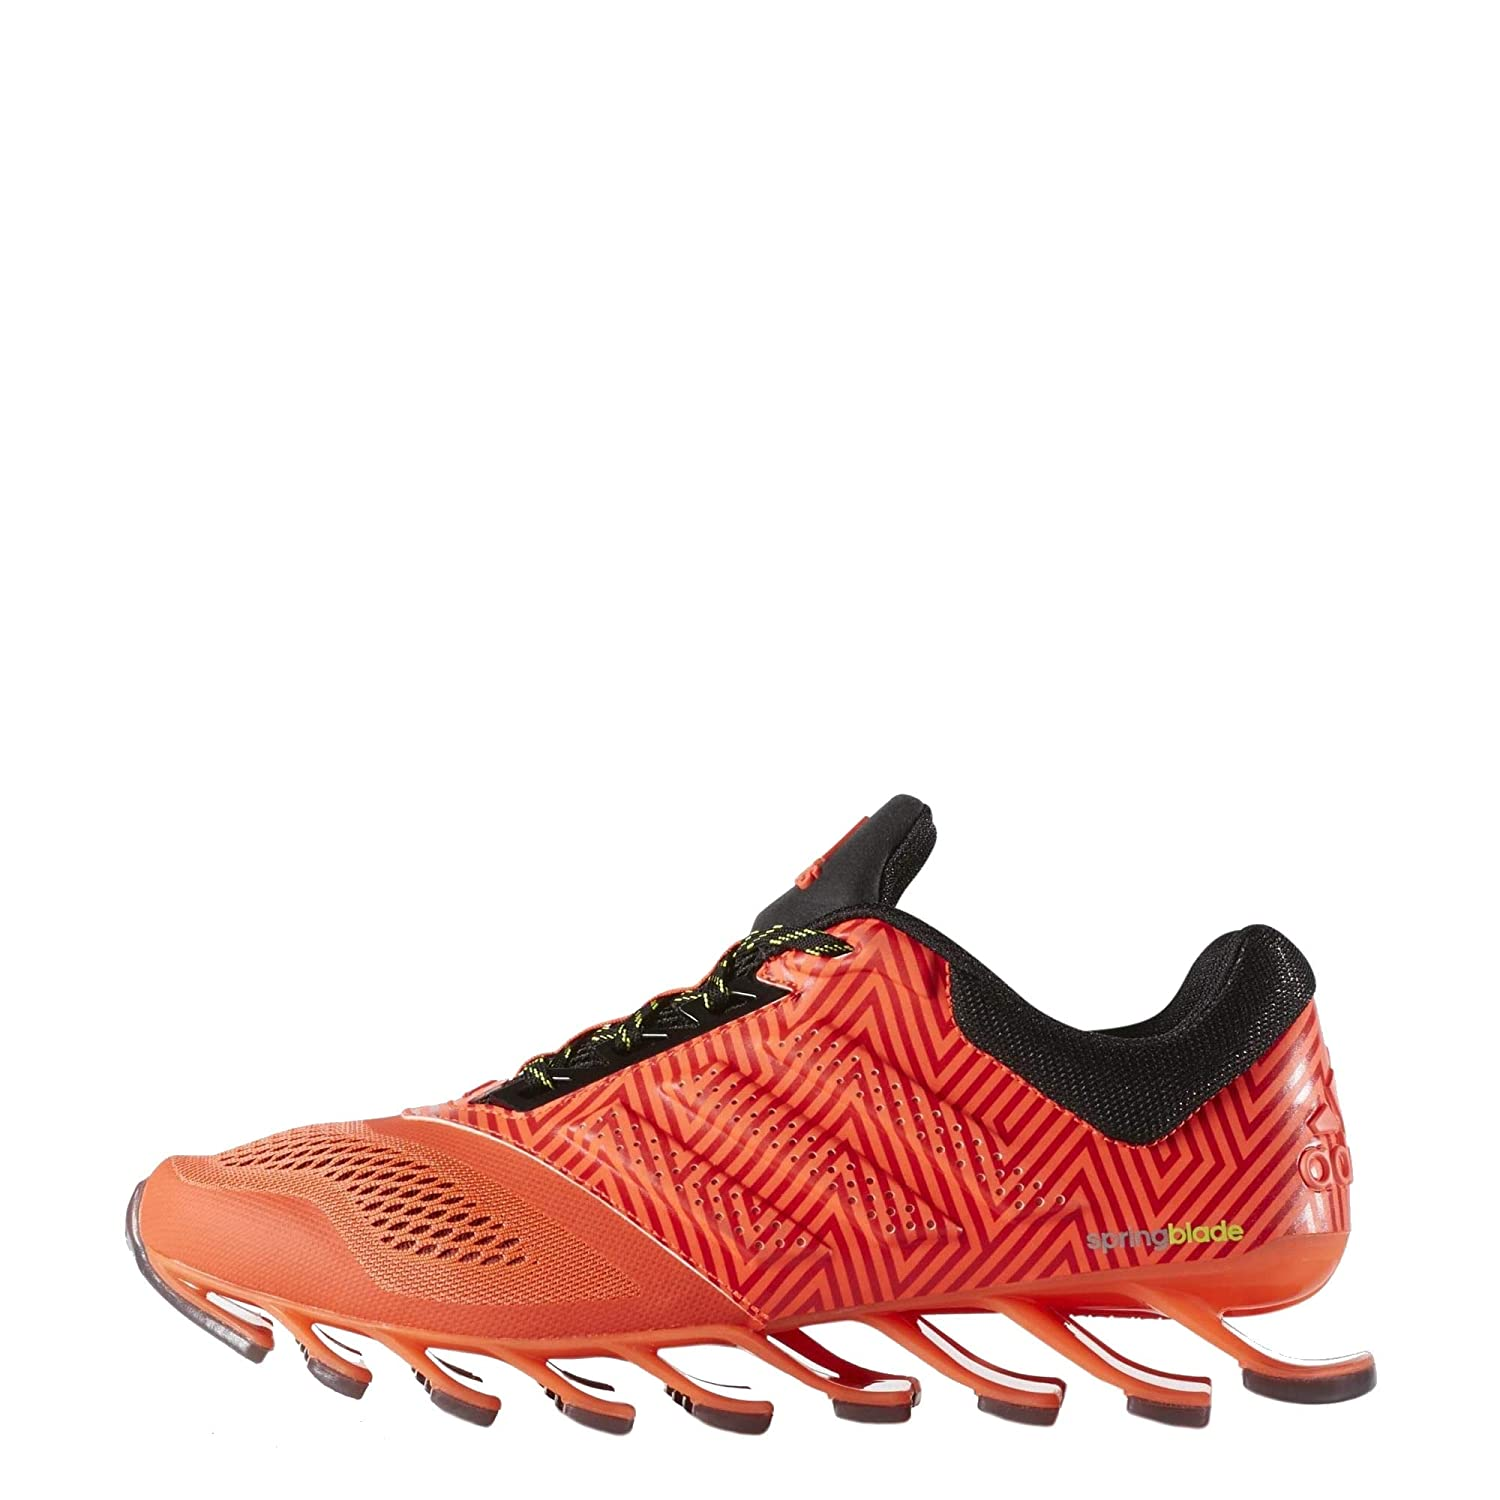 bas prix 70560 5d213 Adidas Men's Springblade Drive 2 M Red, Black and Silver ...